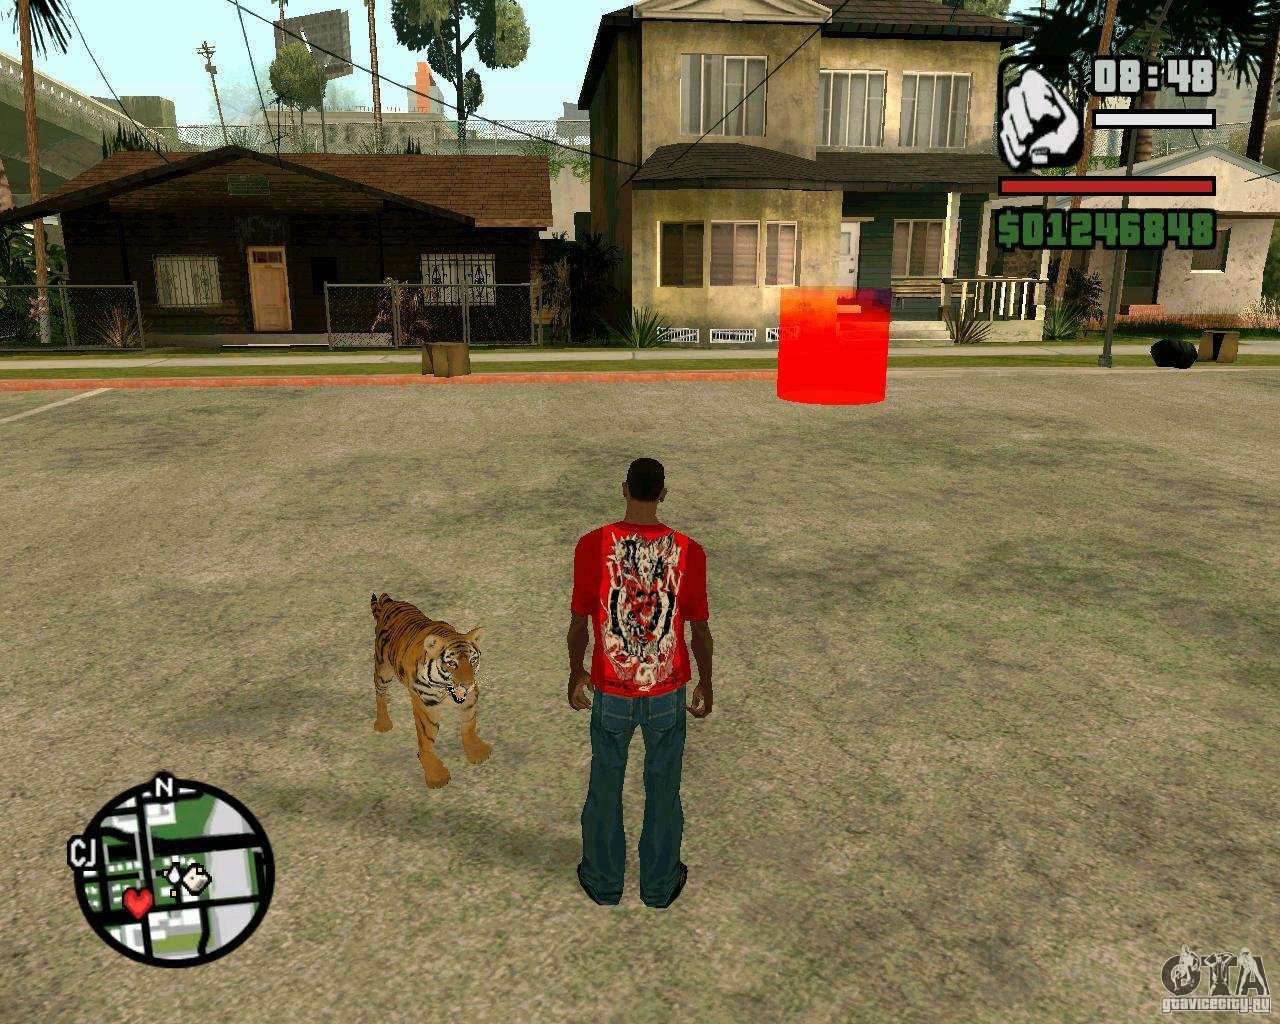 gta sa helicopters with 6041 Tigr V Gta San Andreas on 19102 New Roads San Fierro further 20527 Hd Voda additionally 33021 Mappack V13 By Naka moreover 82925 Remaster Map Full Version besides 65788 Drift.